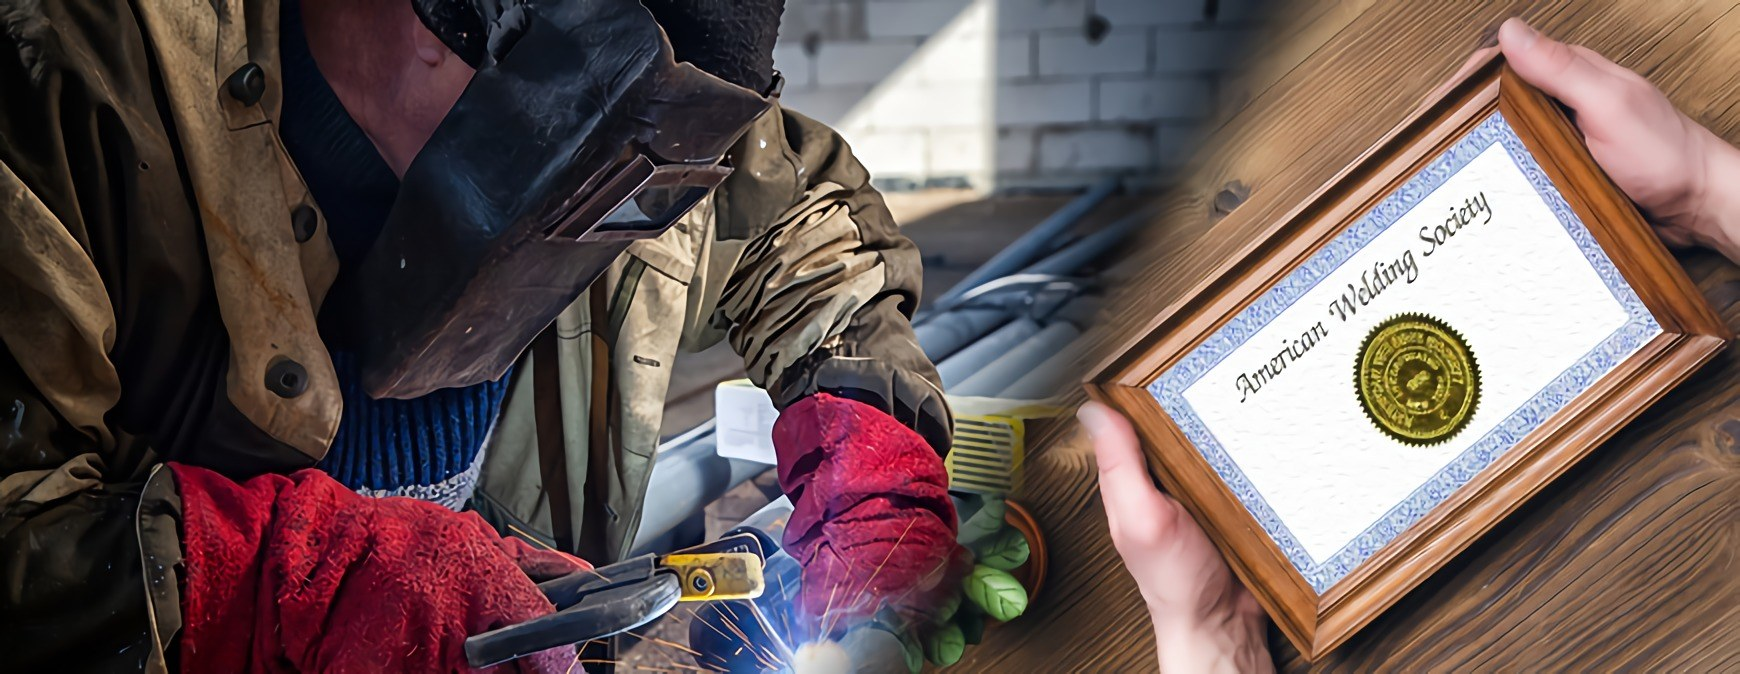 Welder with AWS Welding Certificate